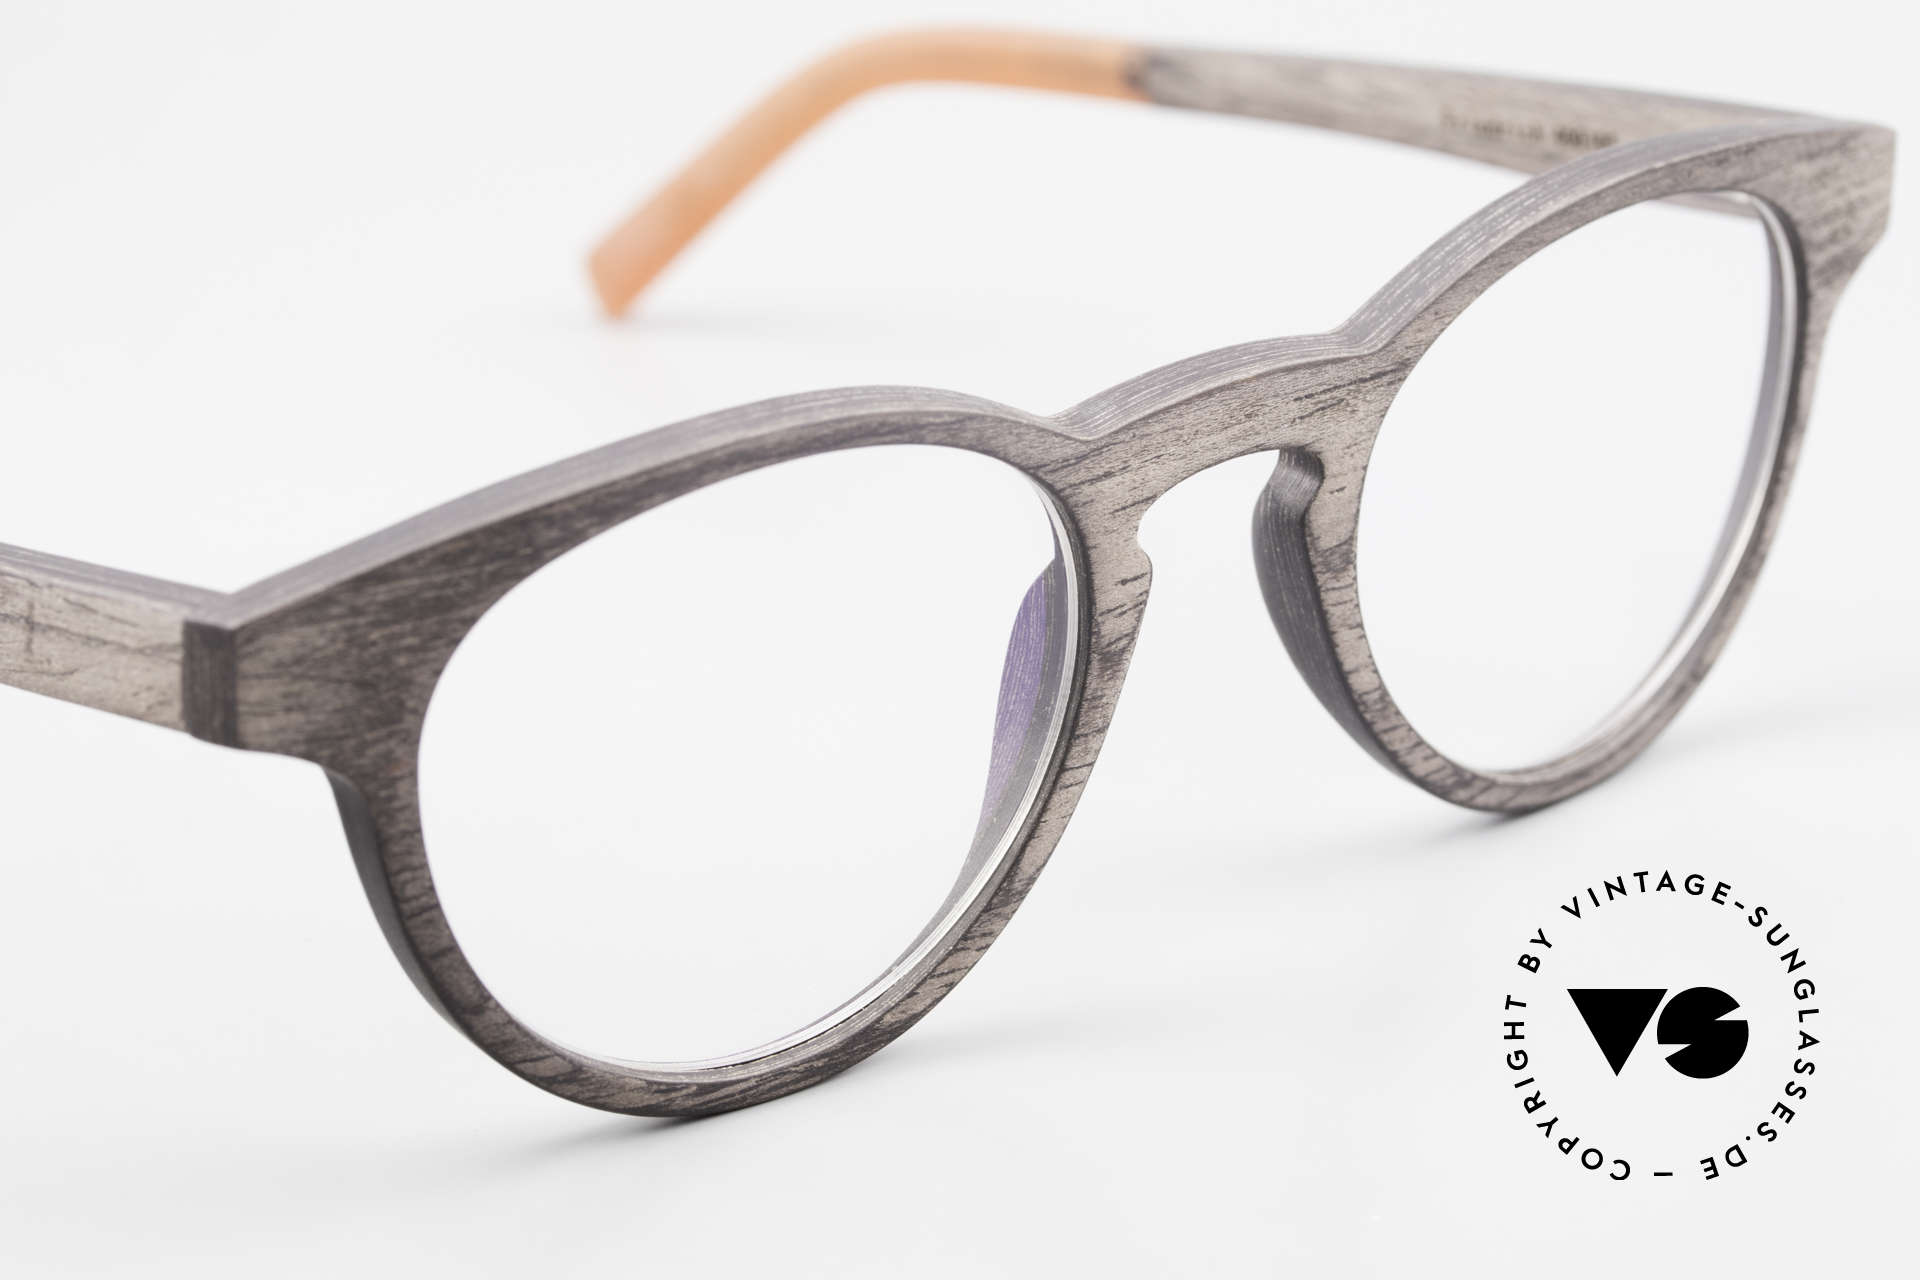 Kerbholz Friedrich Wood Frame Panto Blackwood, unworn pair with flexible spring hinges (1. class fit), Made for Men and Women